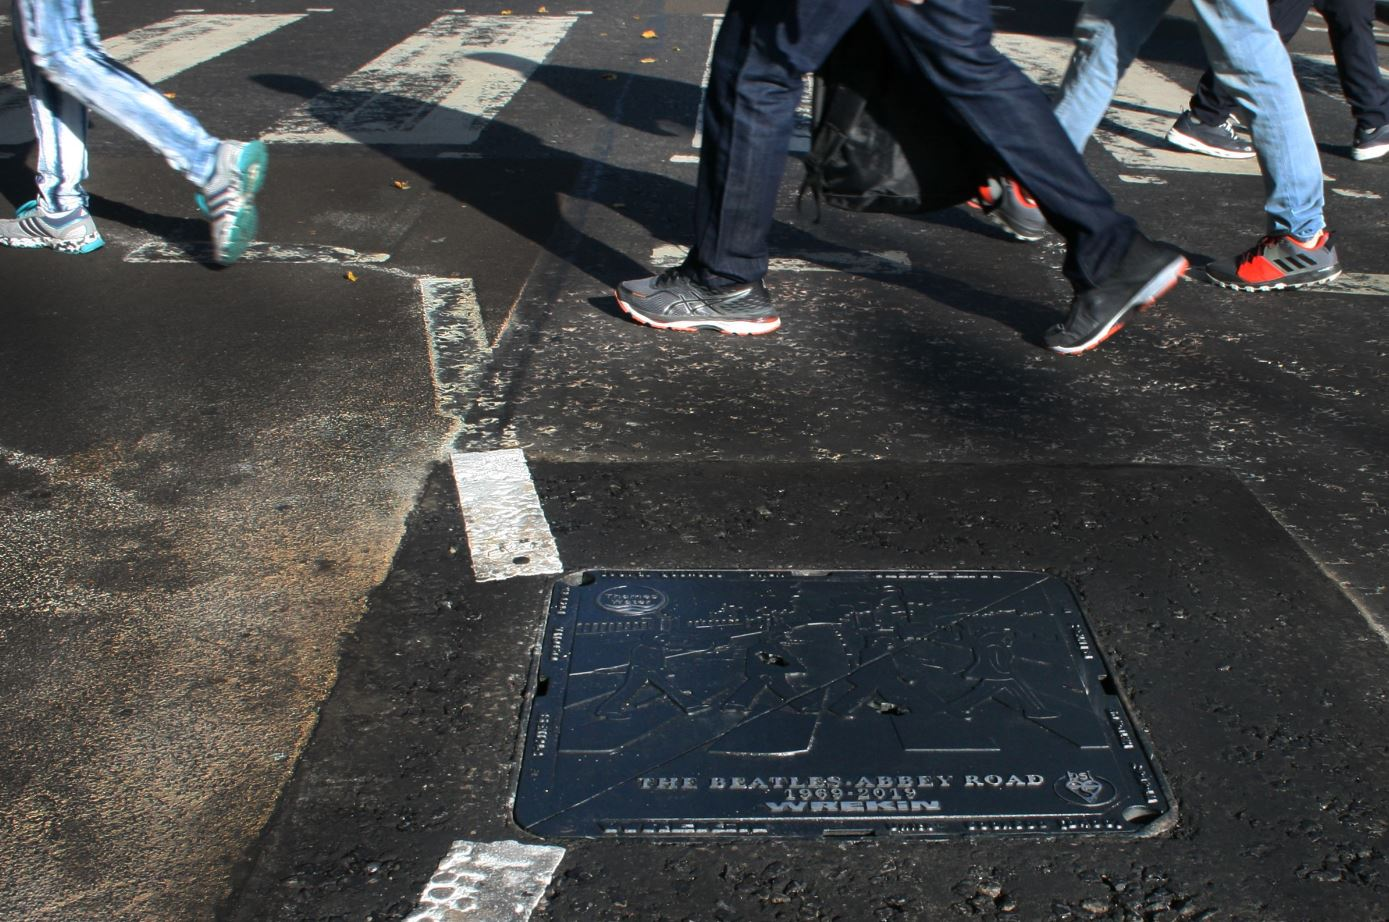 British Beatles Fan Club Abbey Road Gets Bespoke Manhole Cover On 50th Anniversary